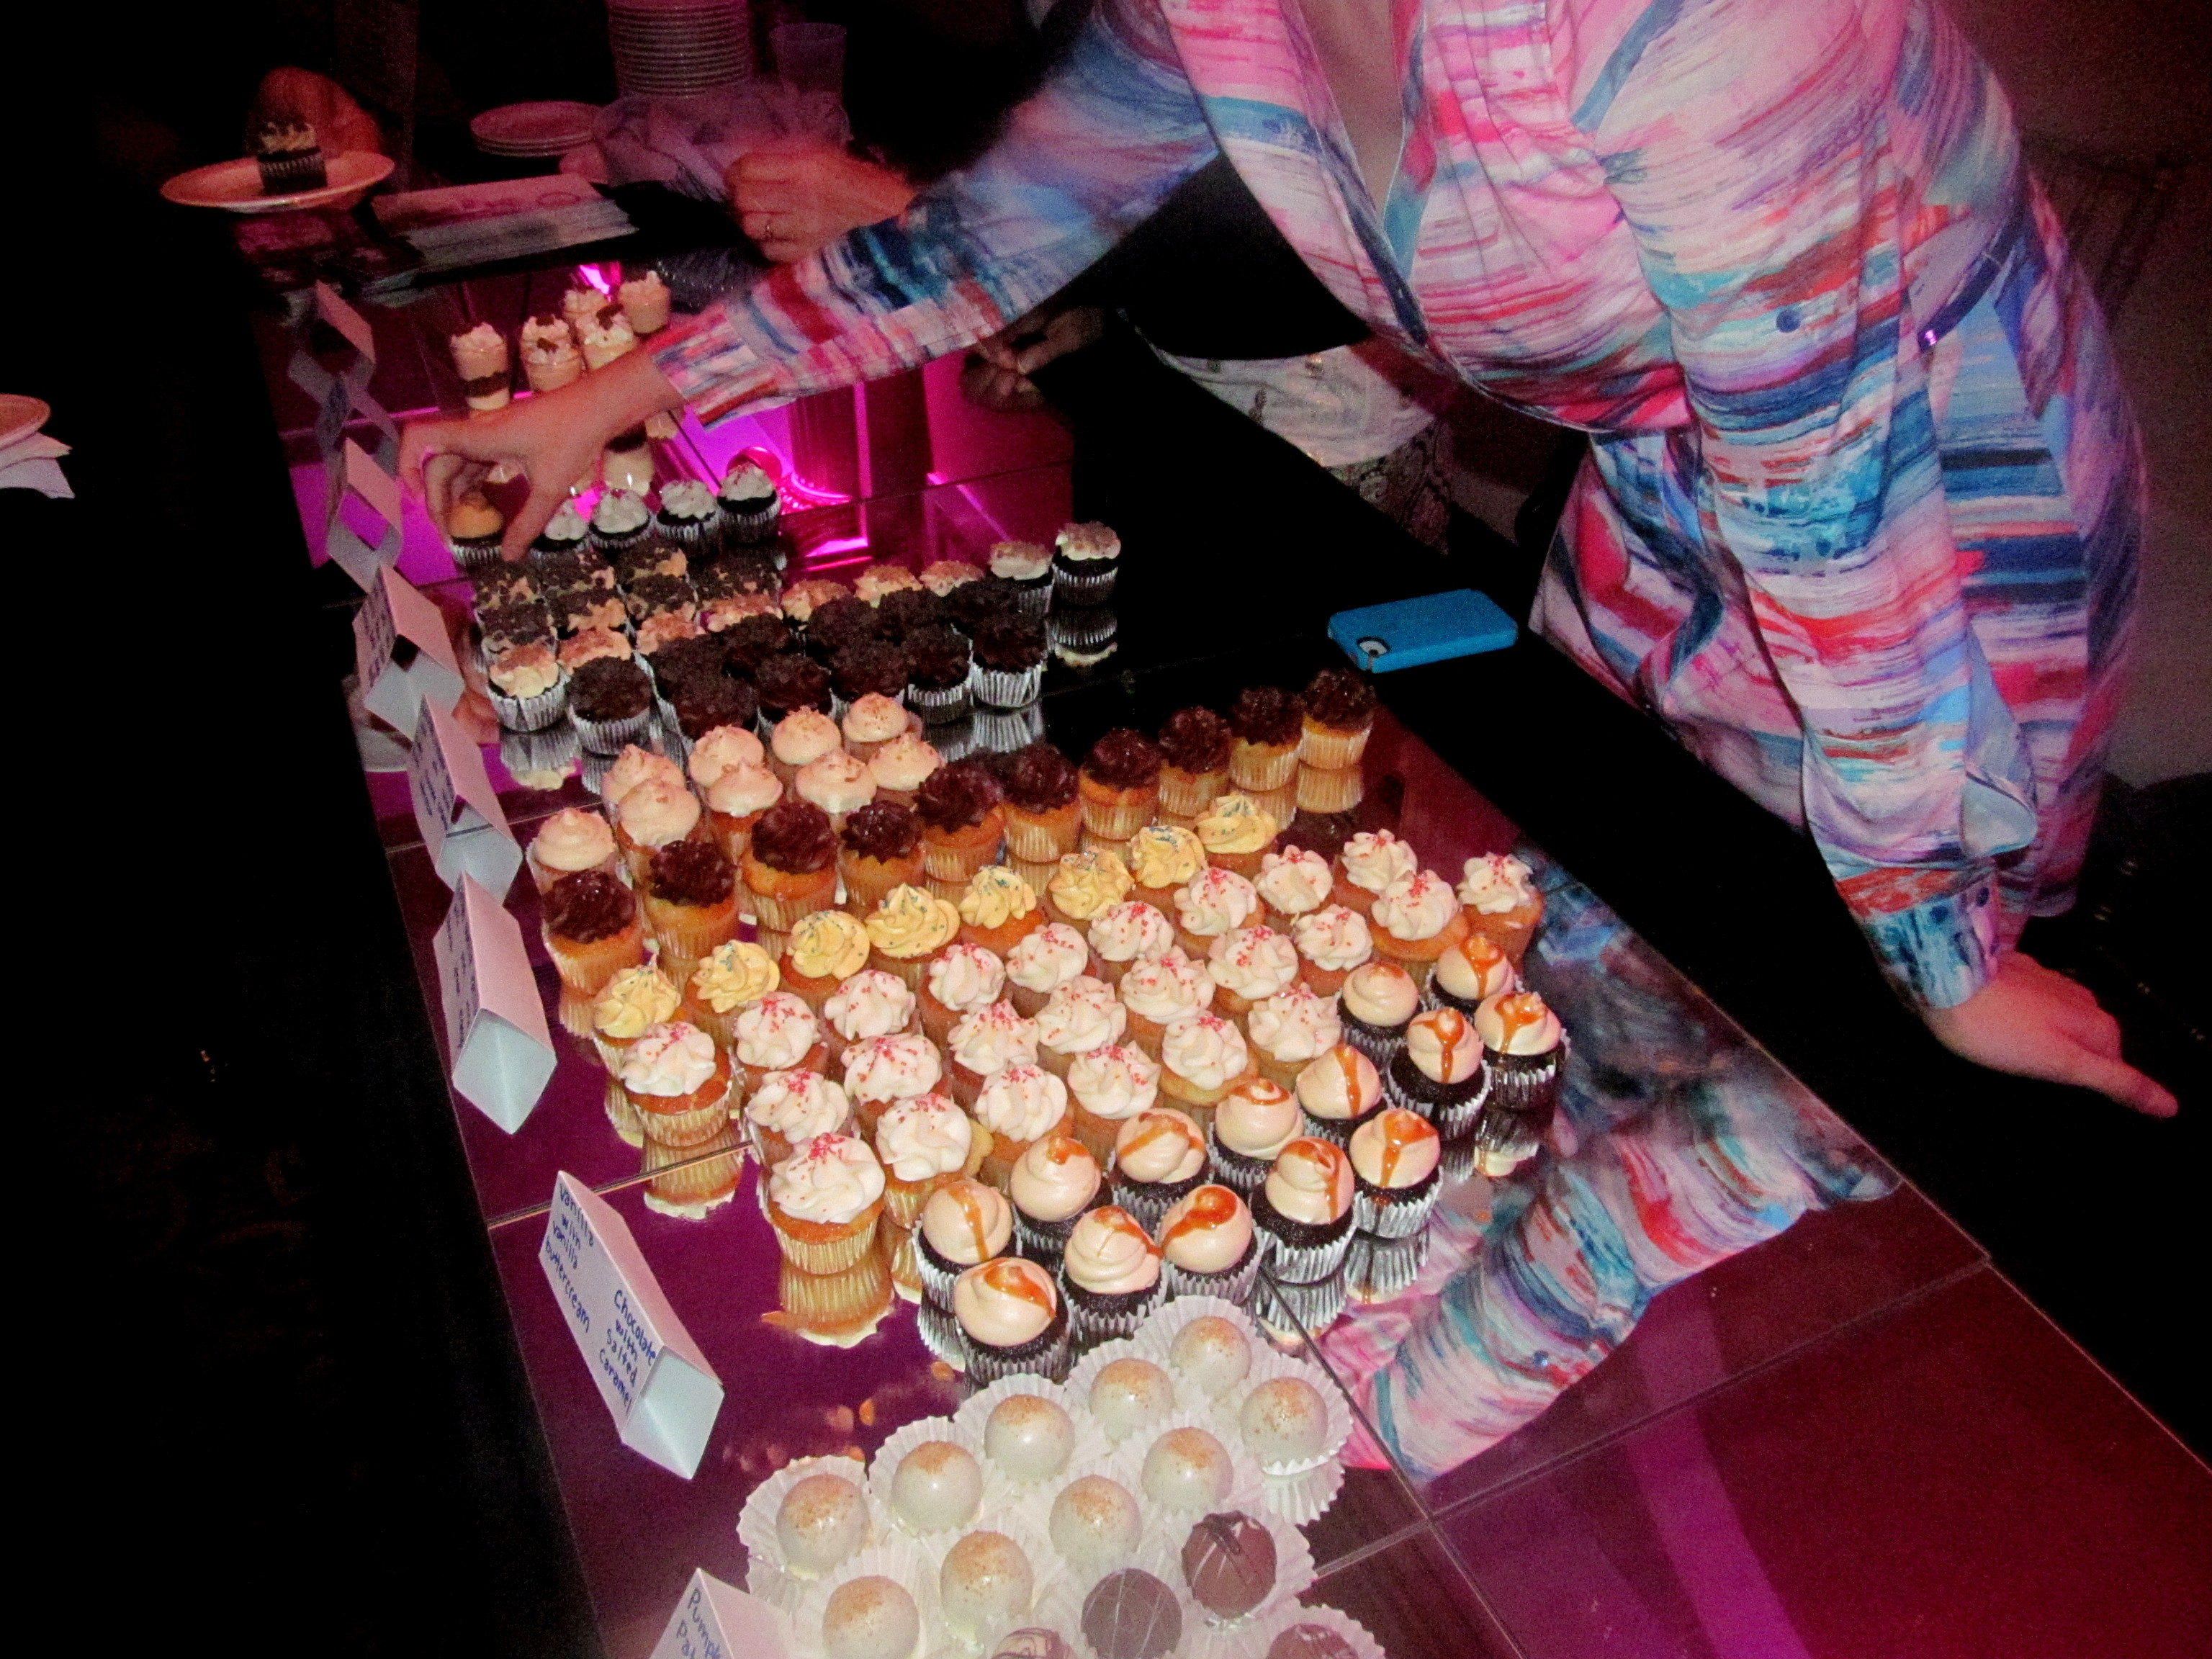 ALL THE CUPCAKES.